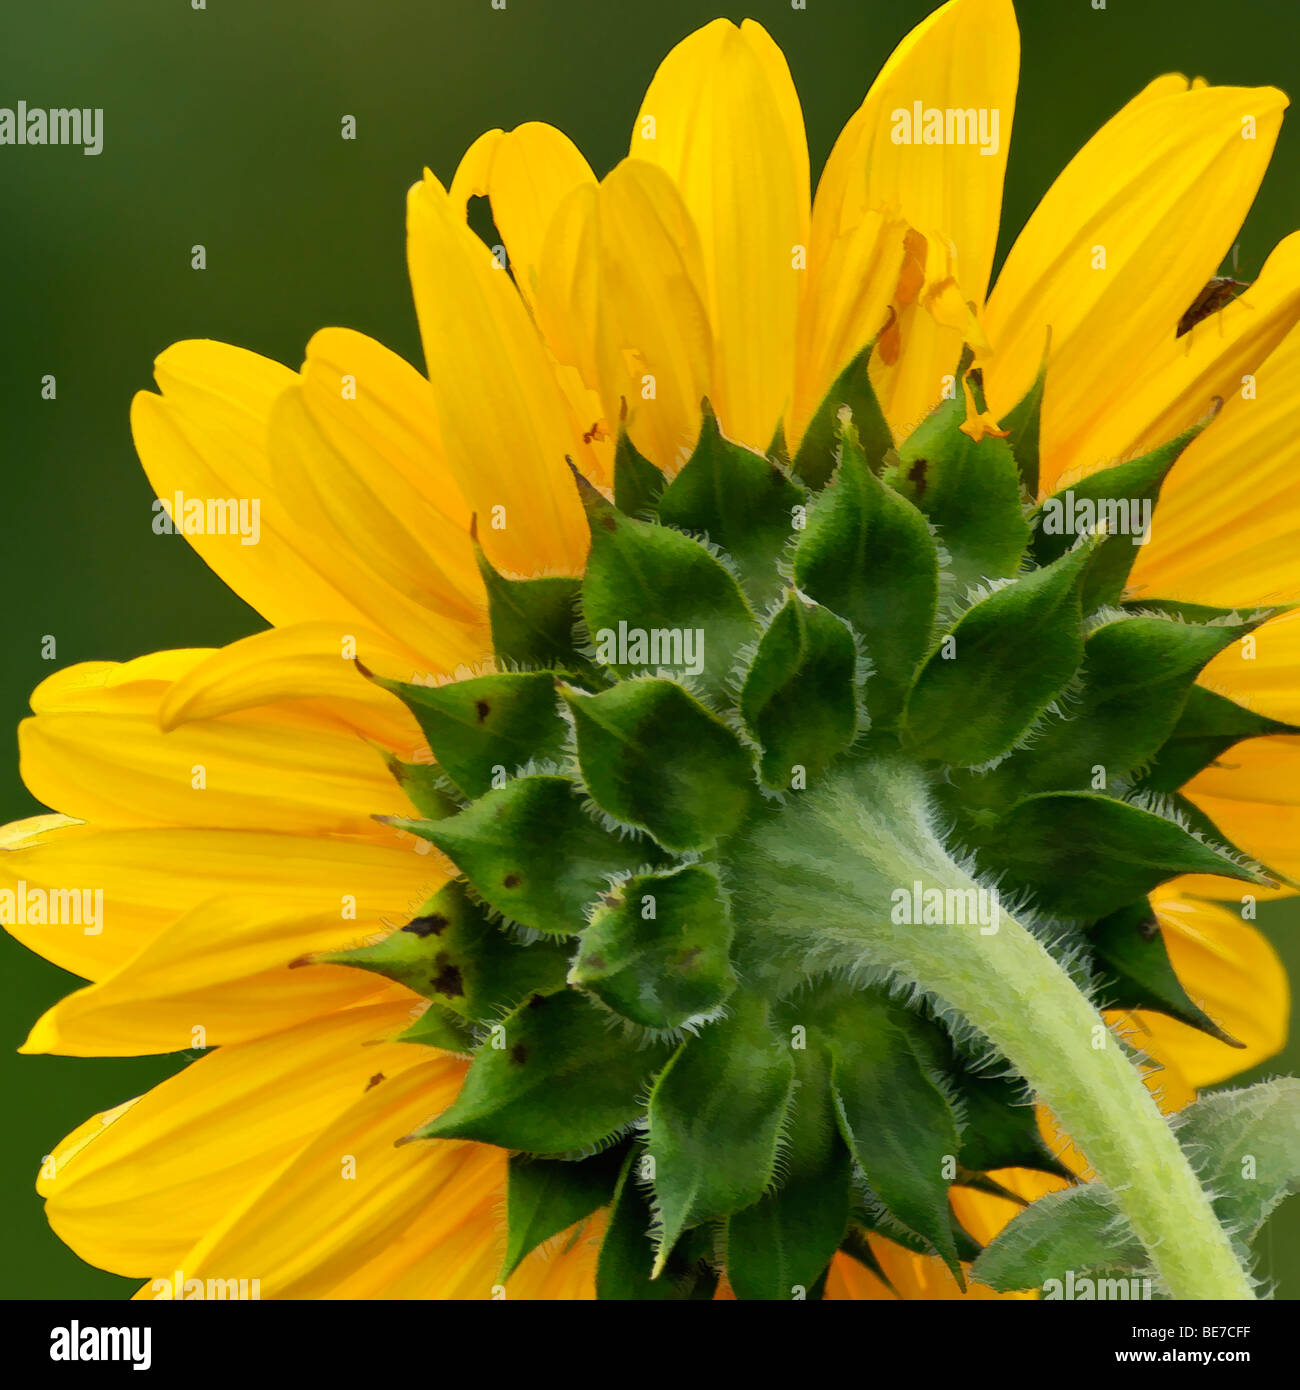 Painting effect on Close-up of the Back of a Sunflower Head - Stock Image